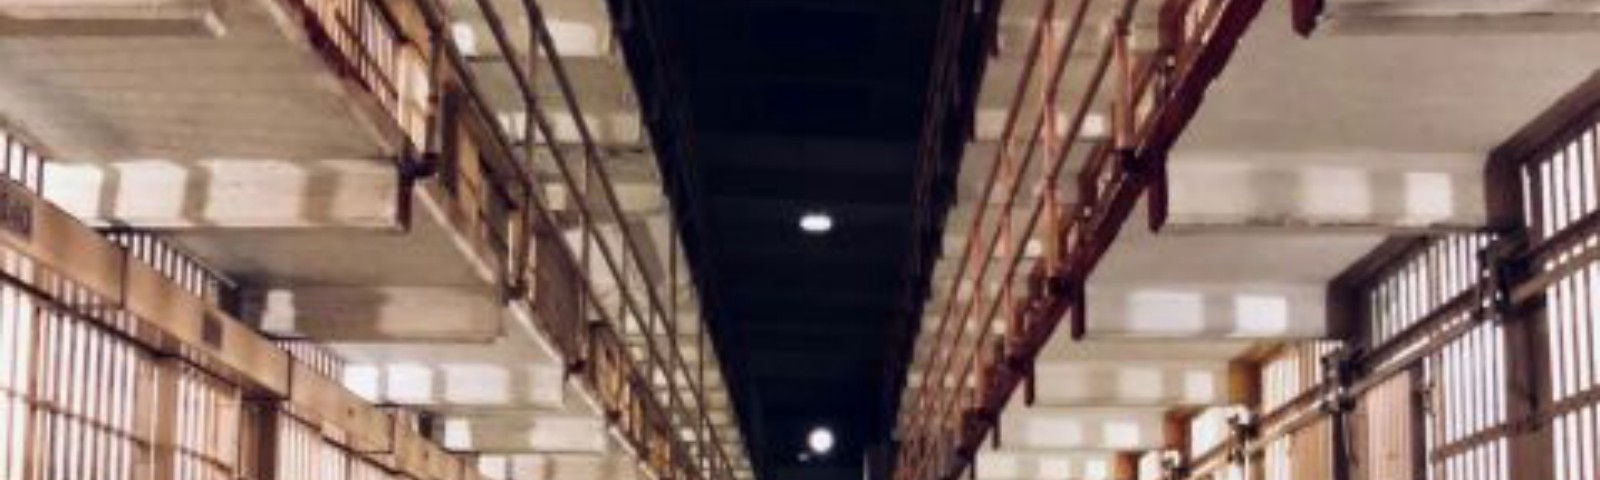 Photo of prison corridors, long stretch of cells.